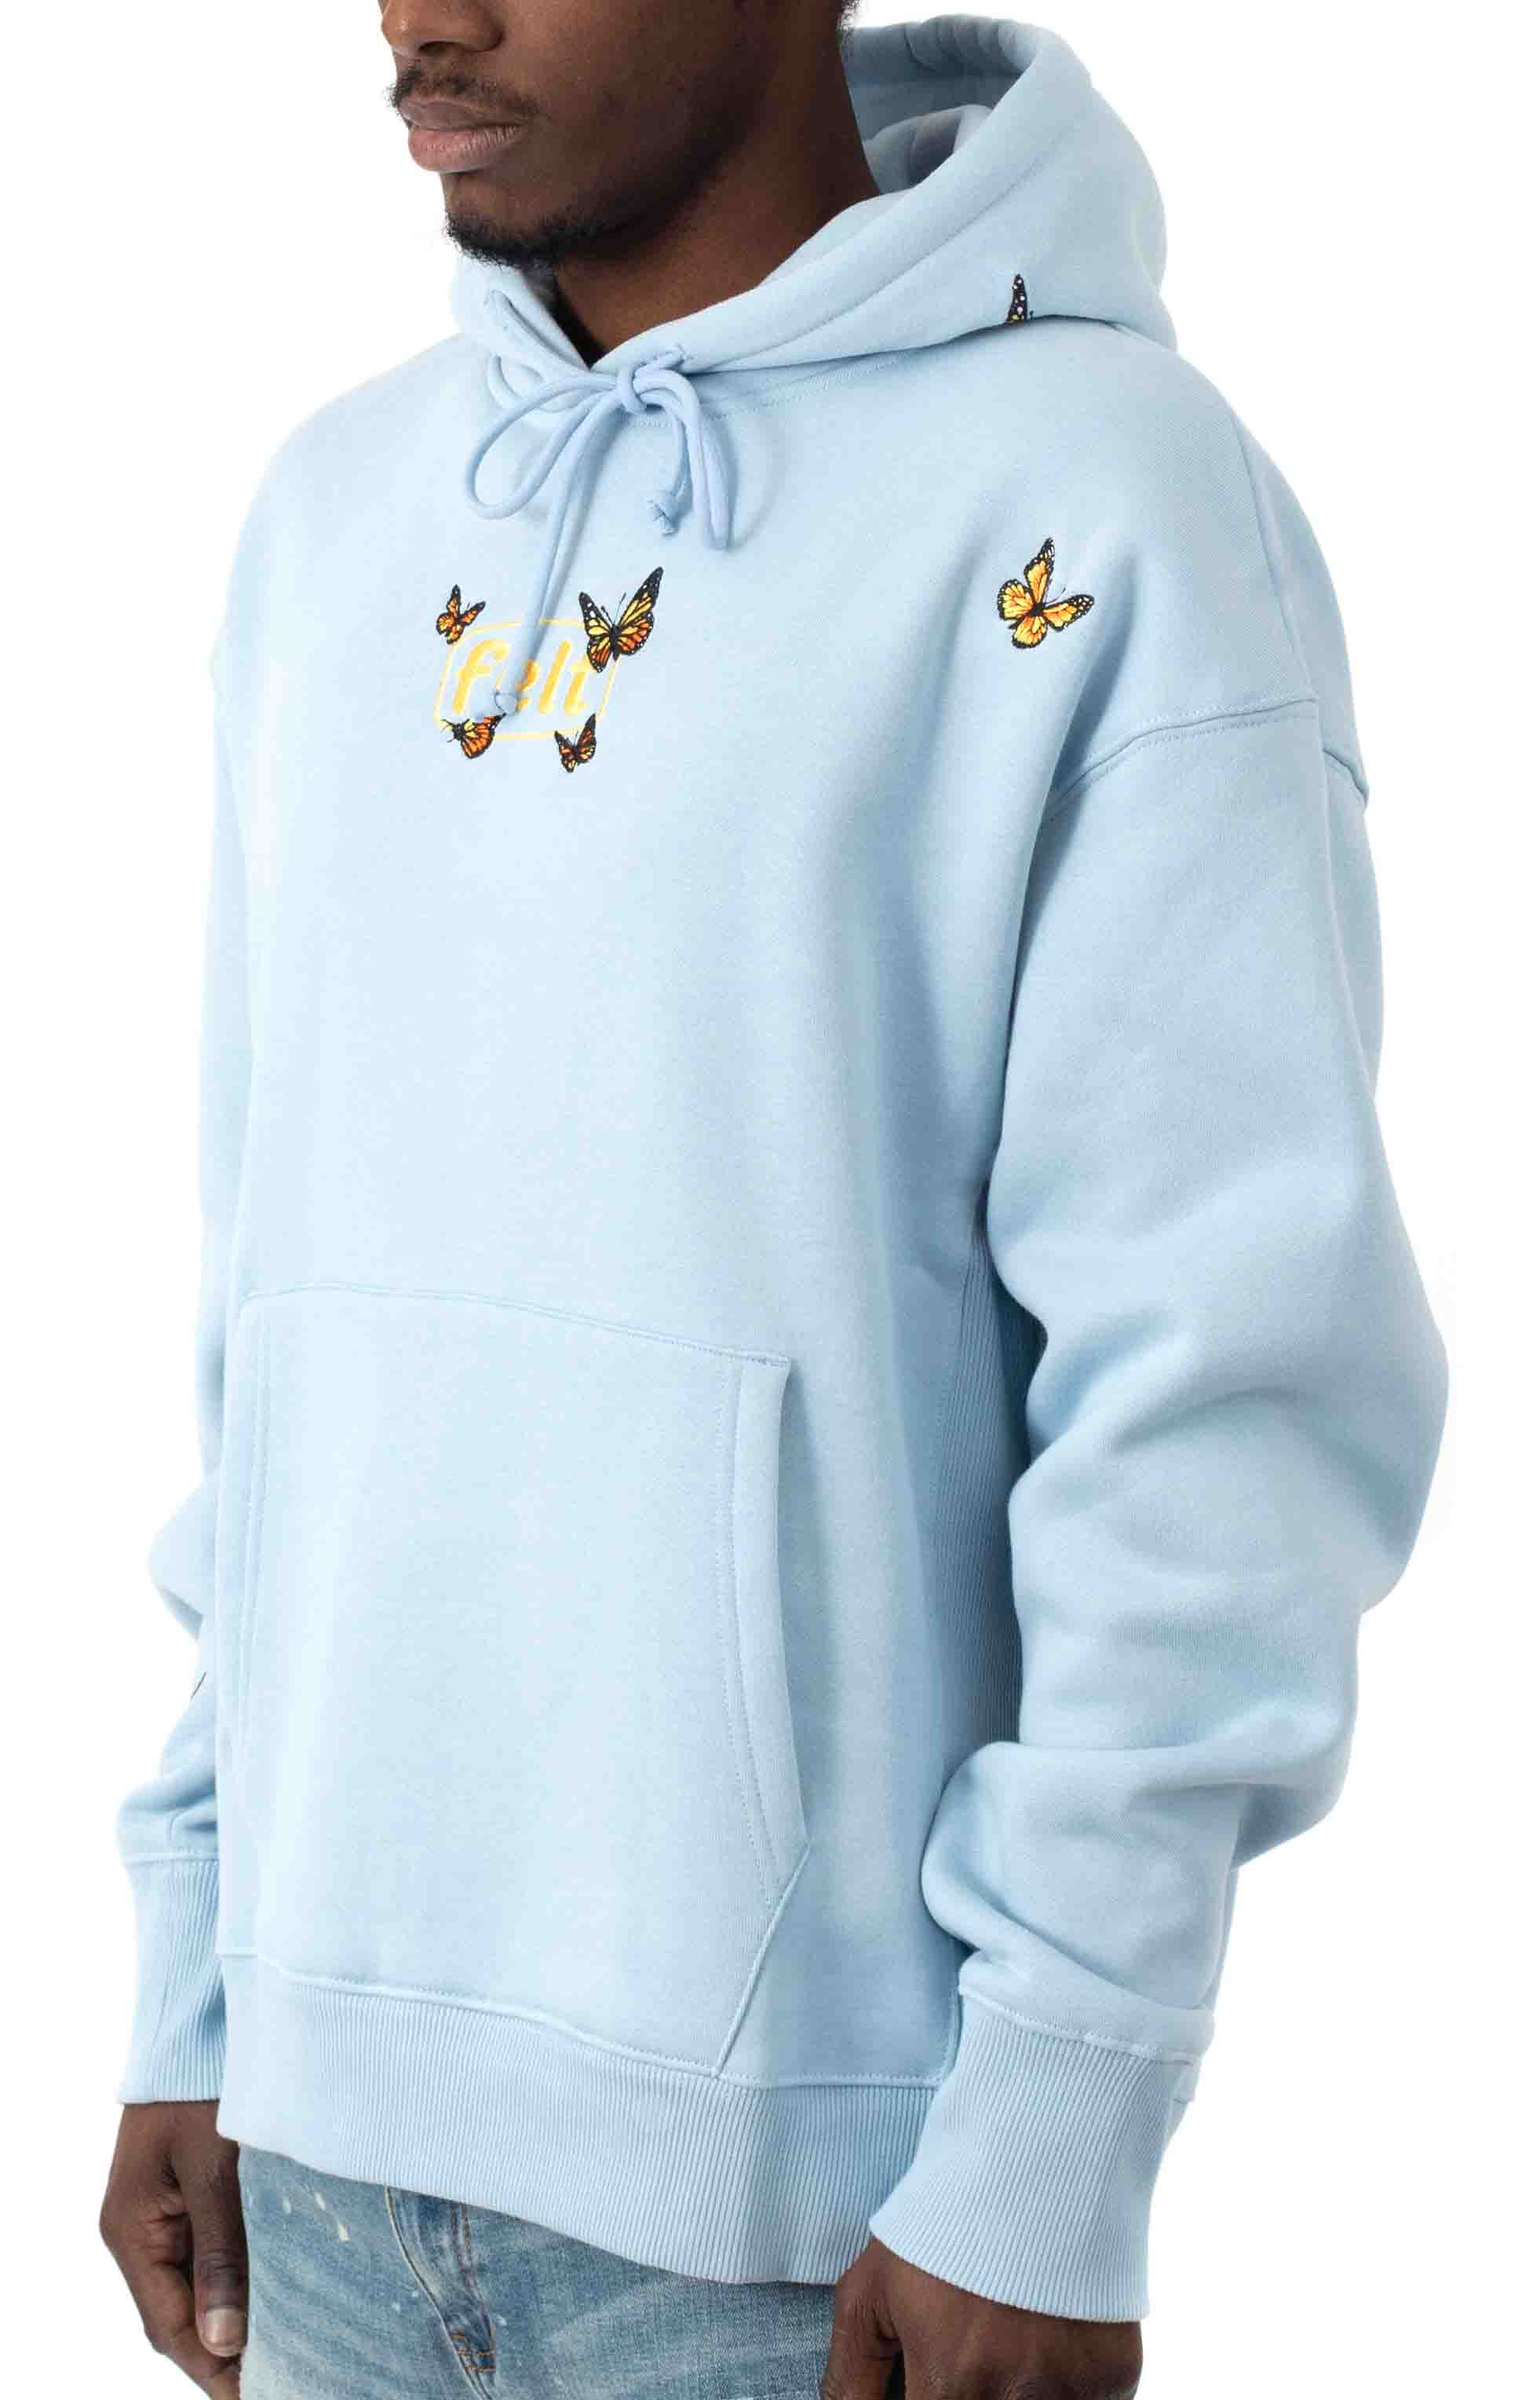 Butterfly Pullover Hoodie - Baby Blue  2